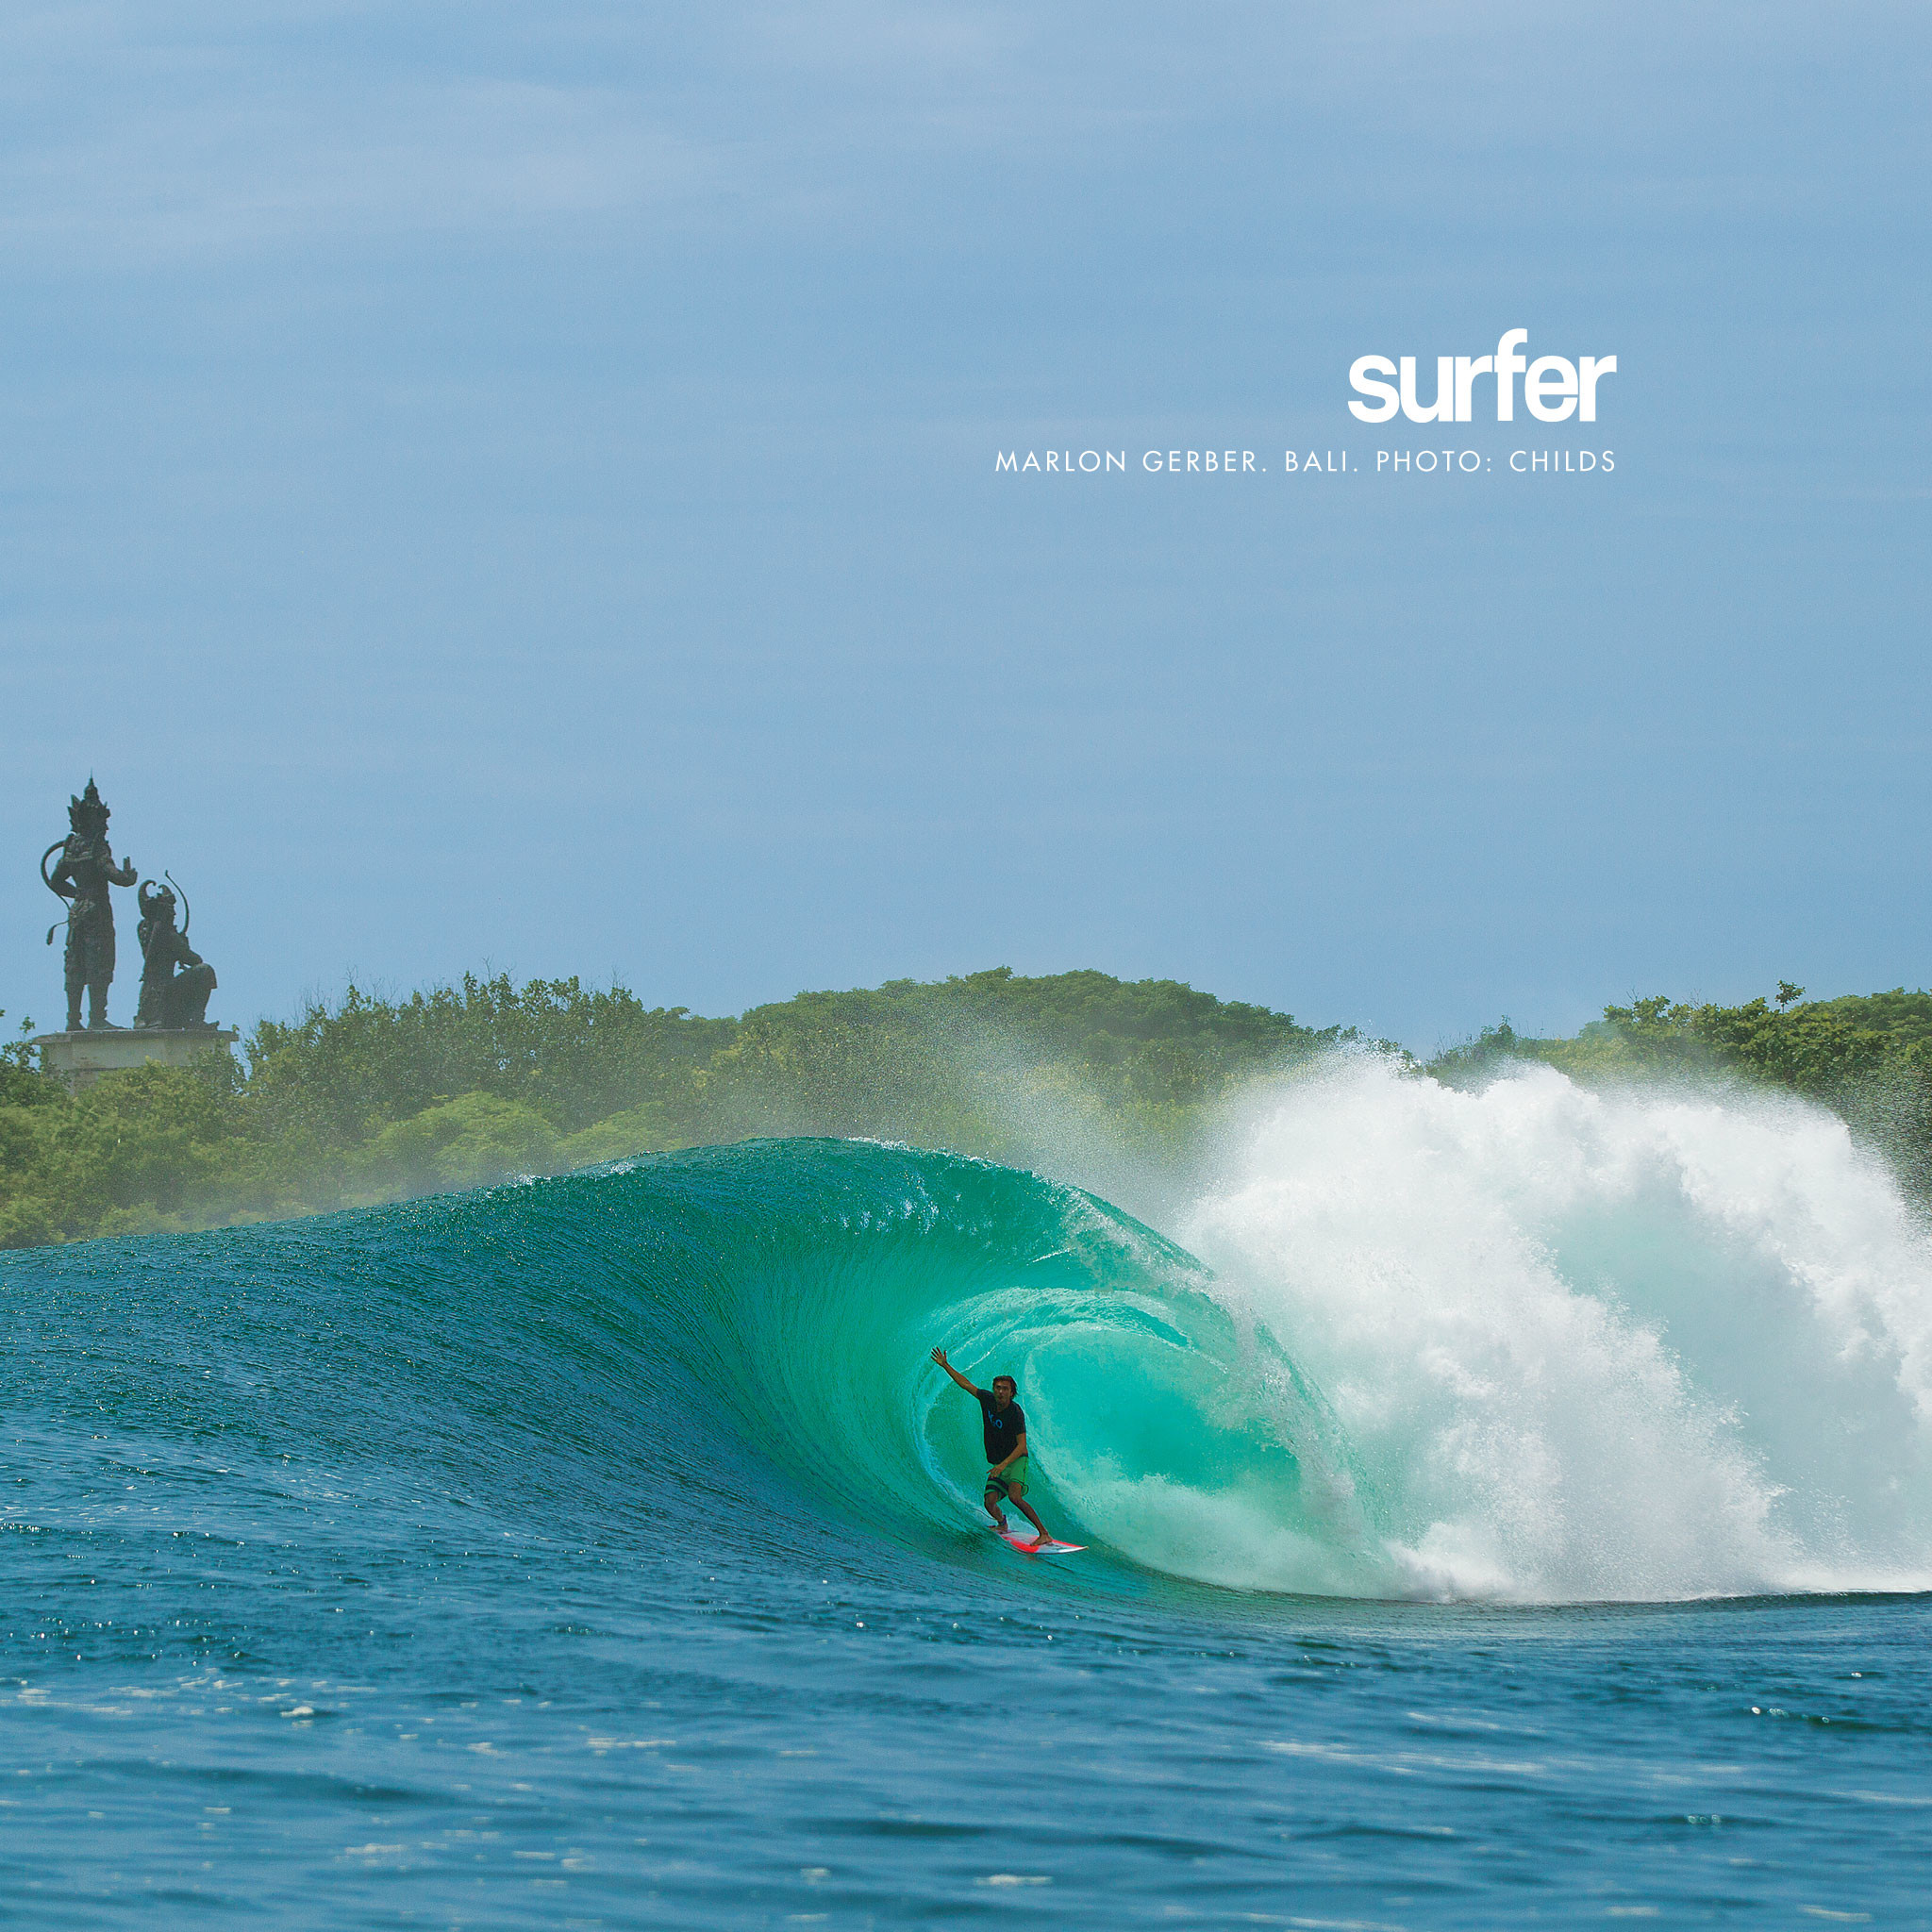 Wallpapers | SURFER Magazine